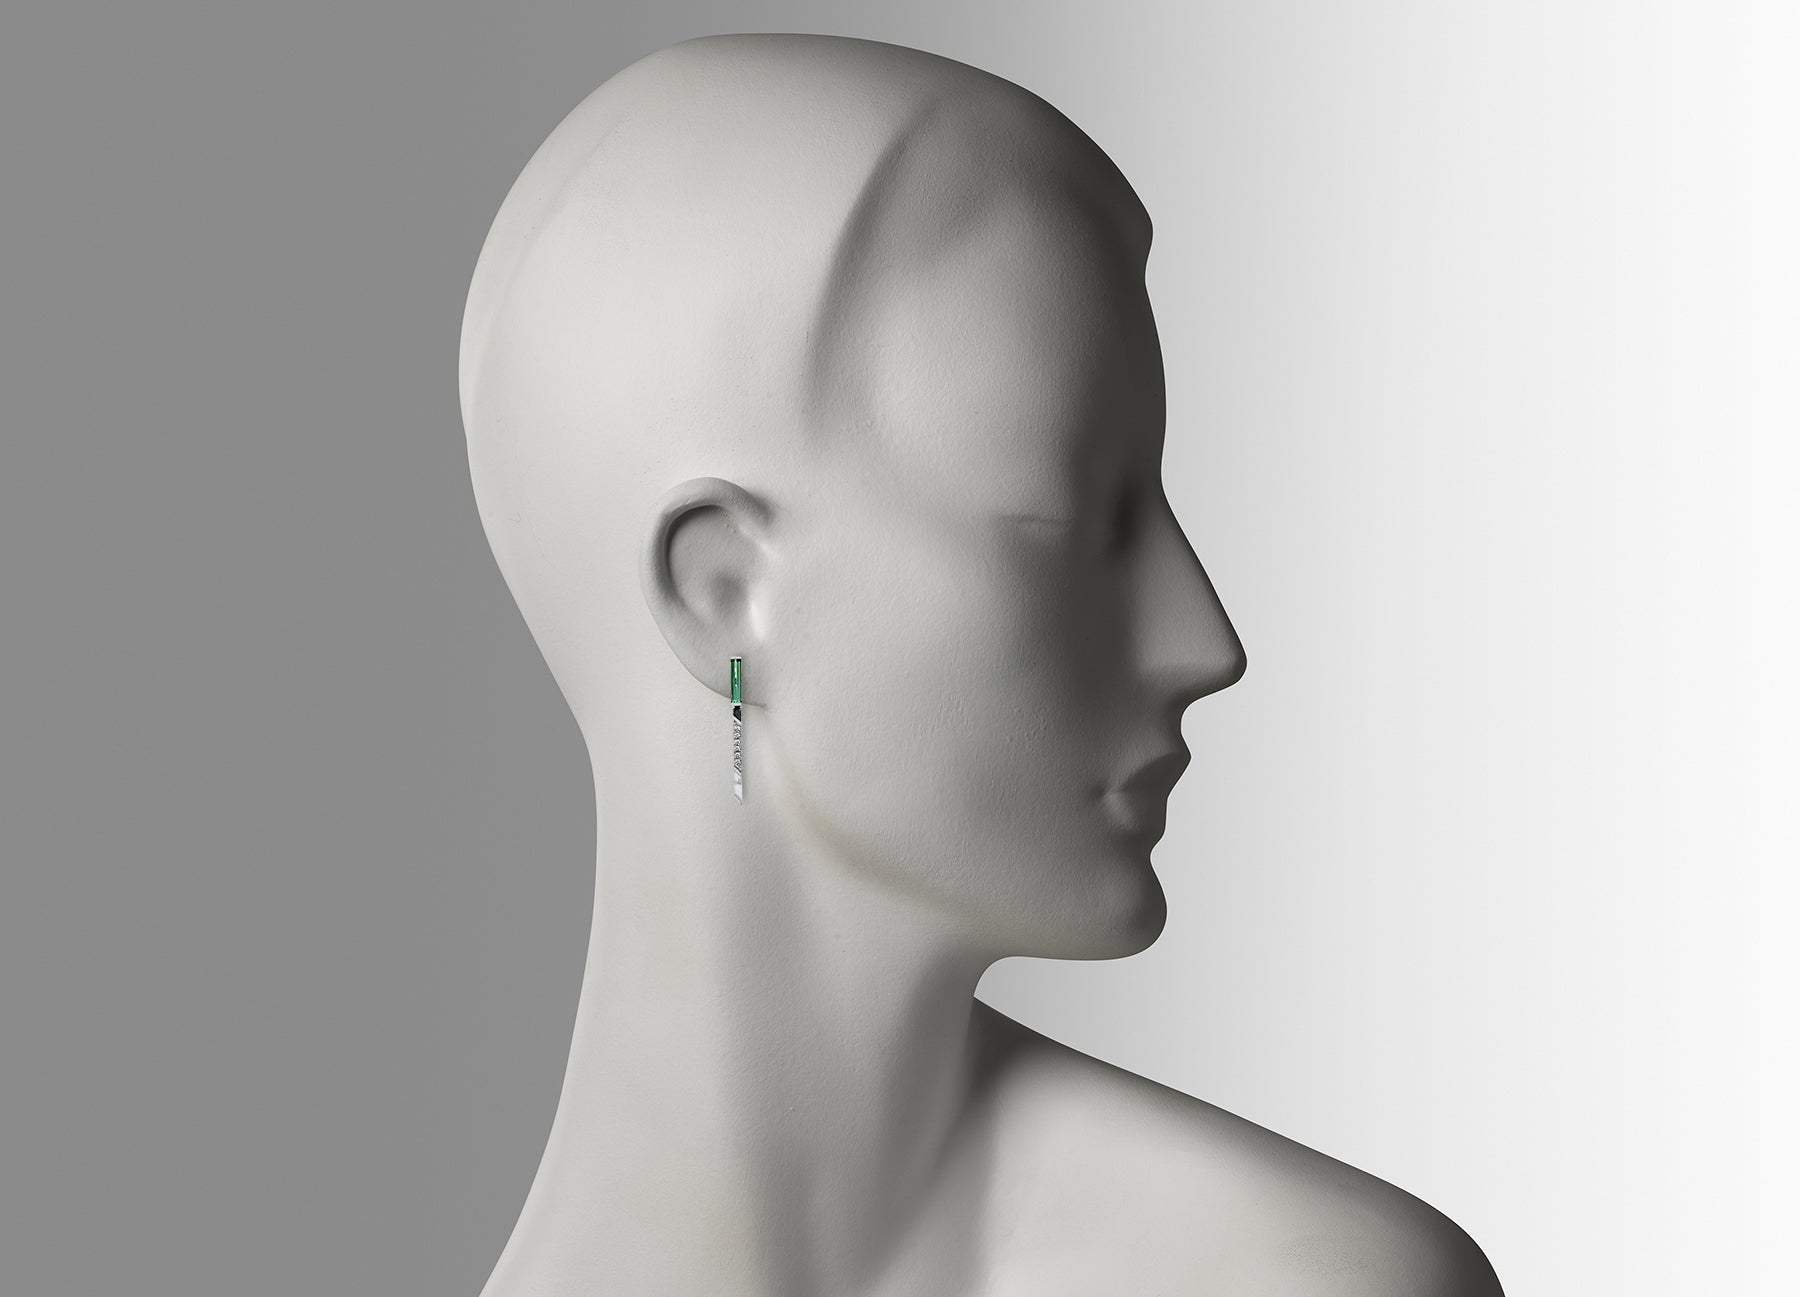 ART DECO TOURMALINE STUDS WITH WHITE GOLD SINGLE DROP TASSELS